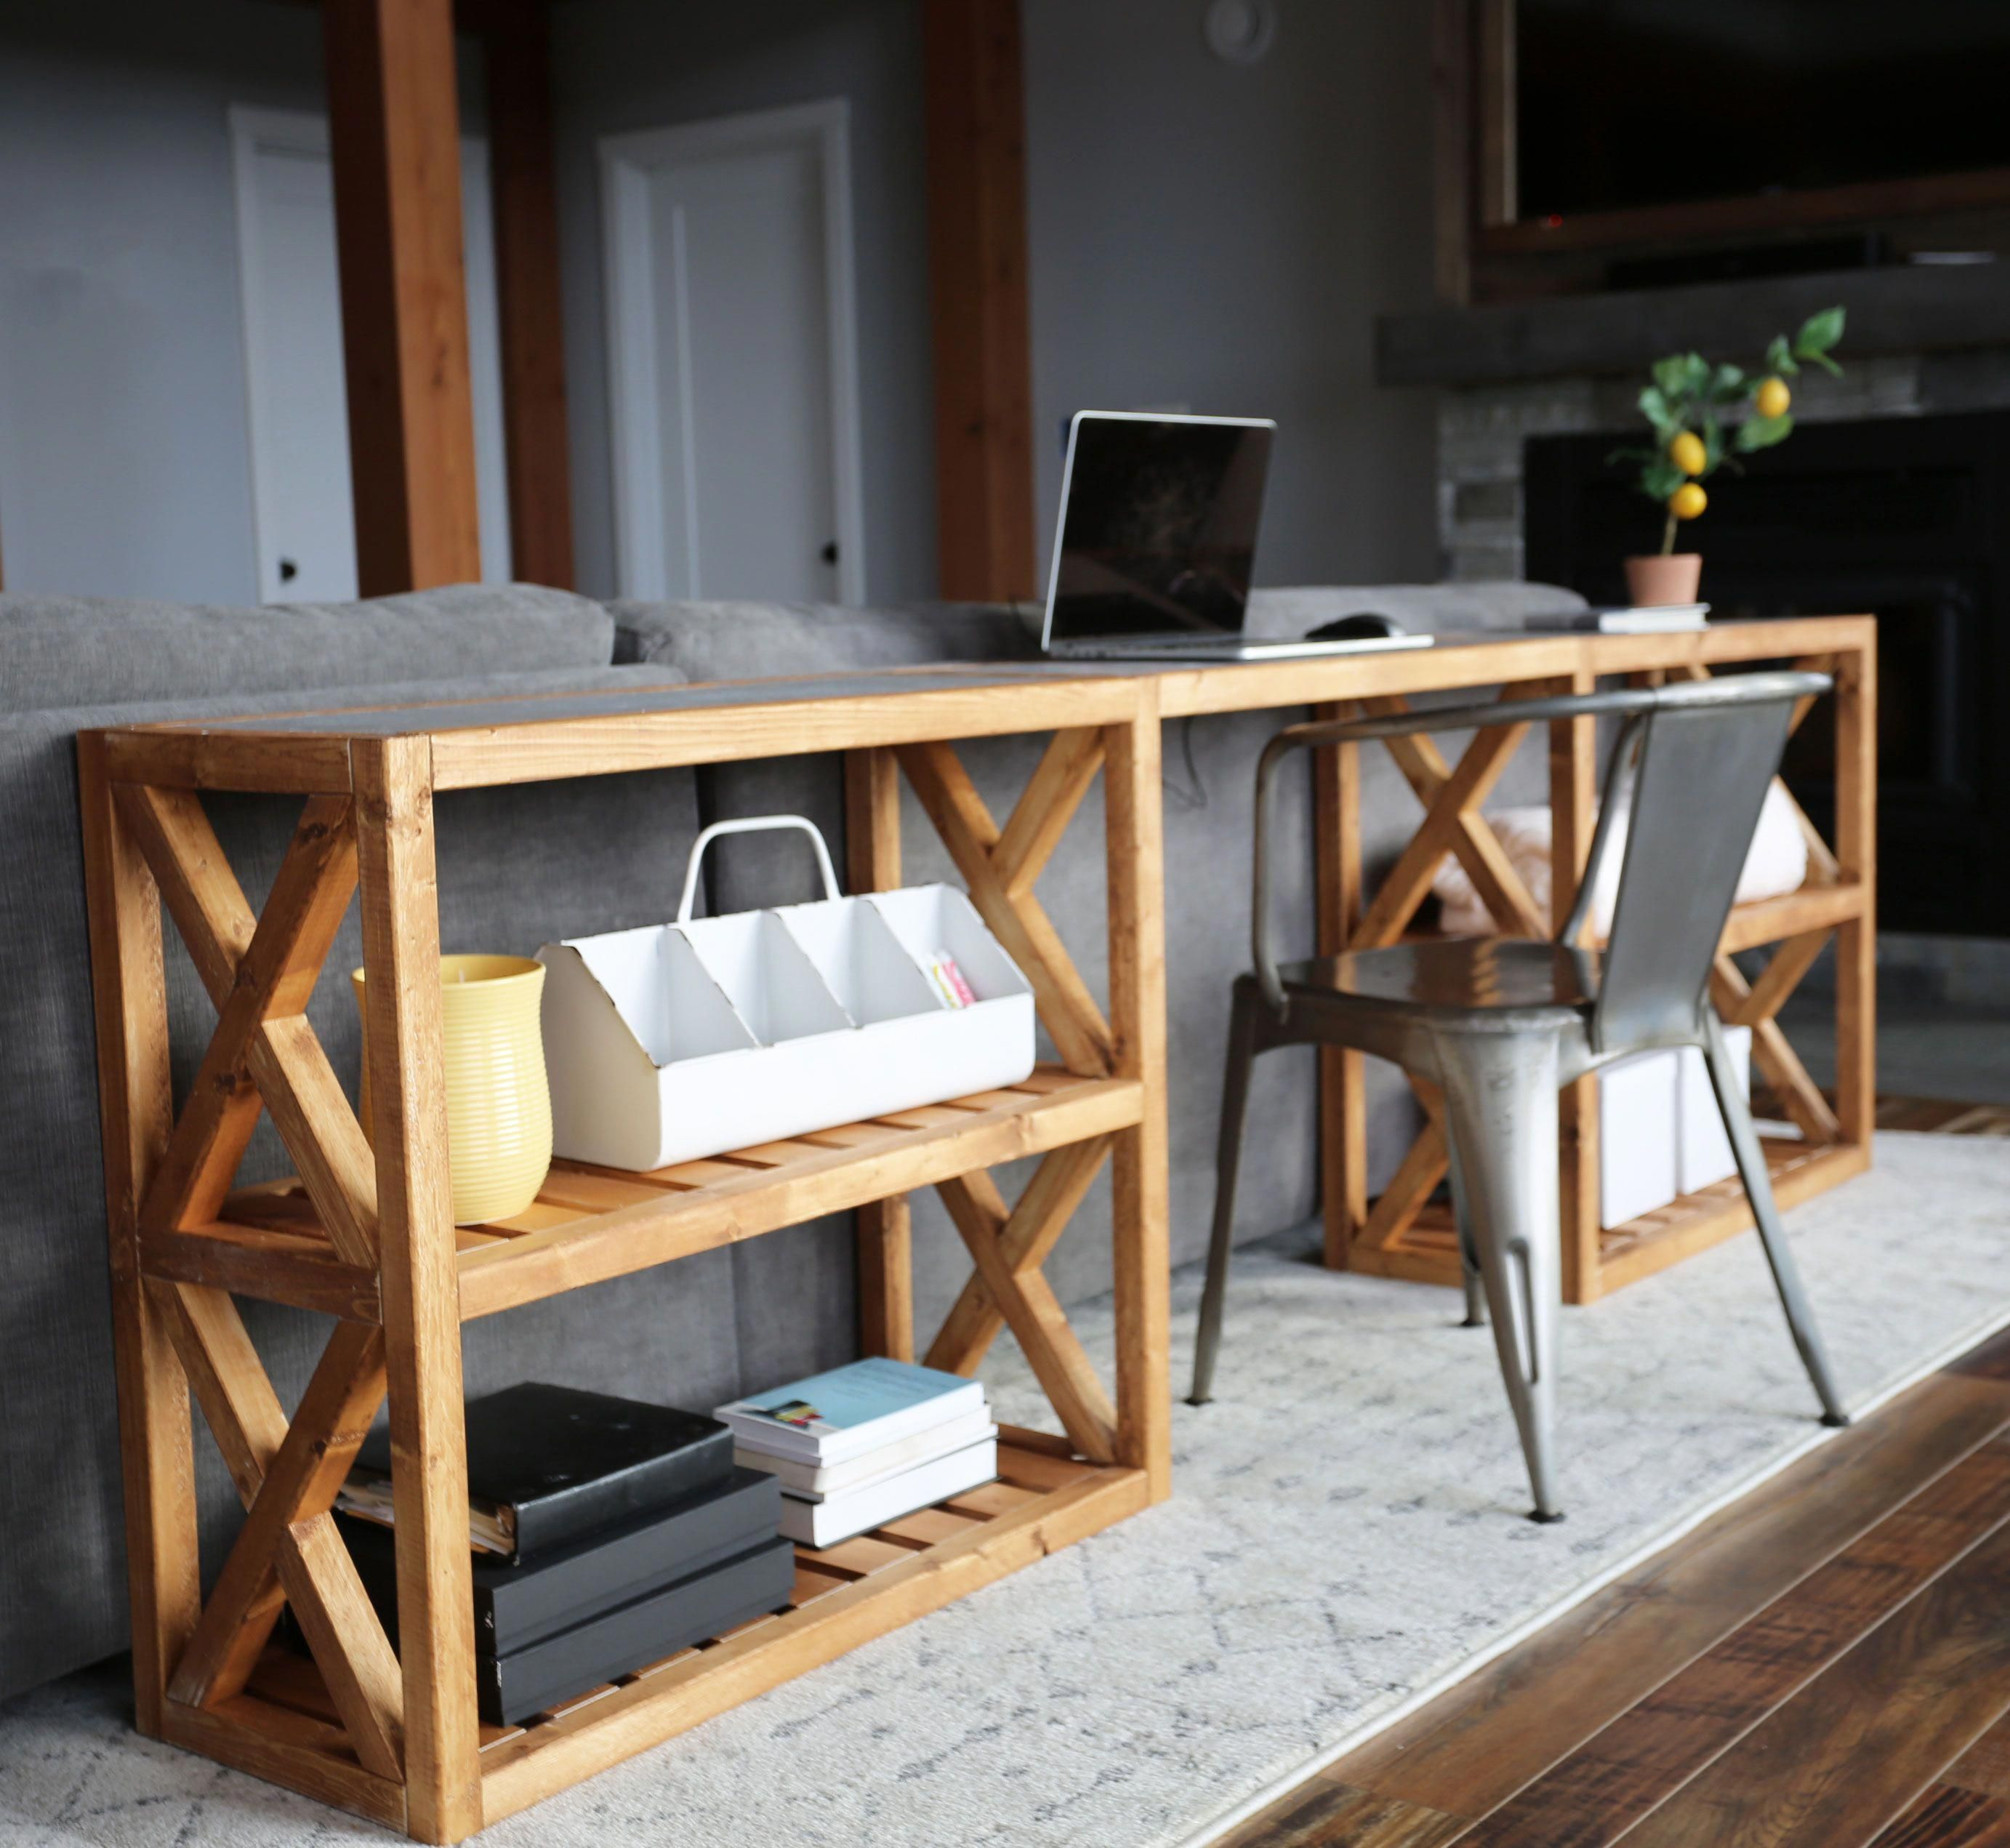 This Beautiful Diy Farmhouse Console Table Was Built For Only 20 Ana White Is Giving Us All Of The Build Farmhouse Console Table Diy Console Table Home Decor